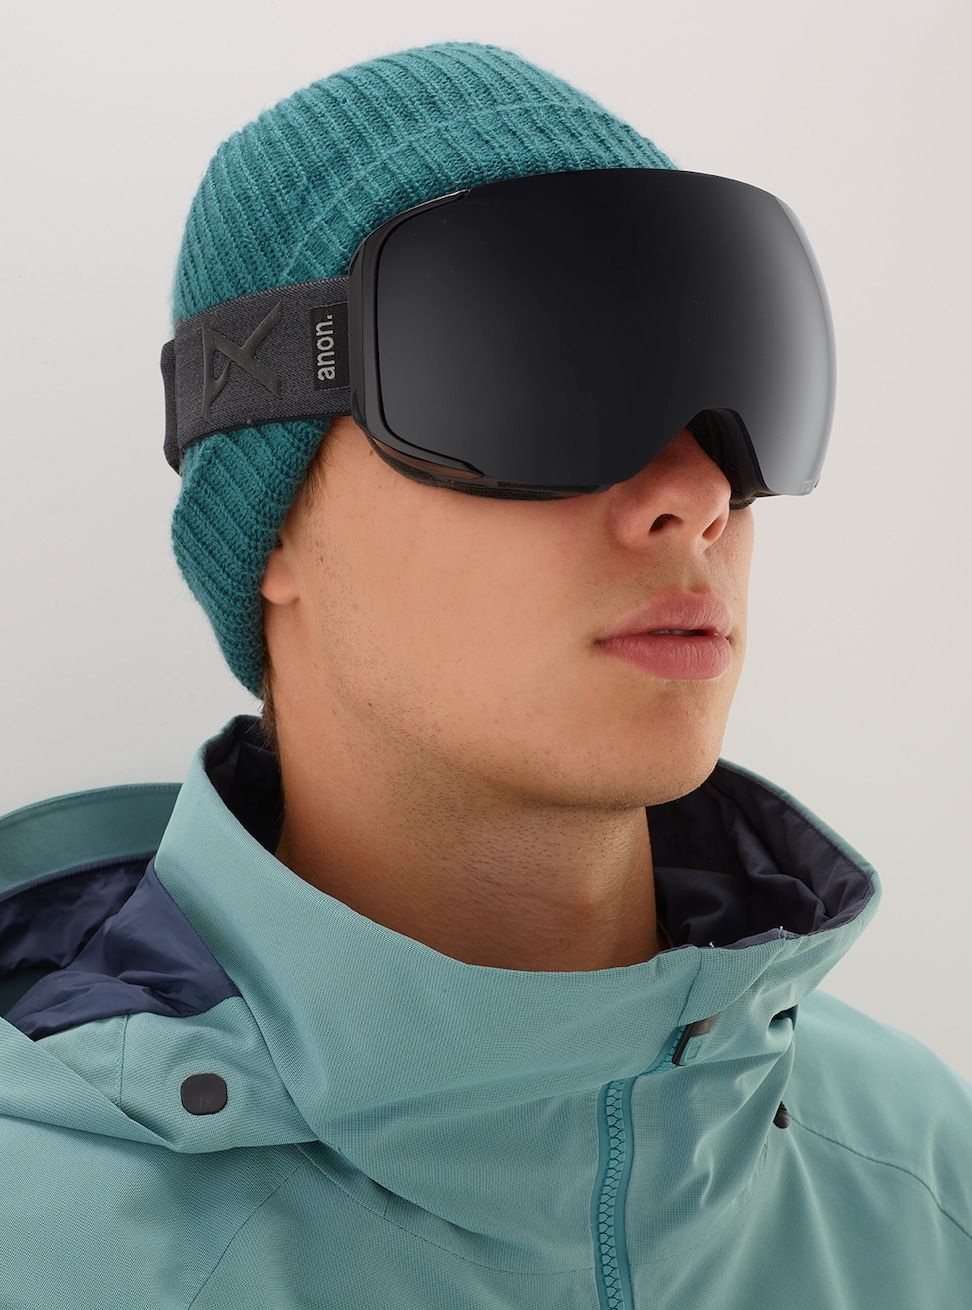 a1f83b60aaea Shop the Men s Anon M2 Goggle + Spare Lens along with more ski and  snowboard goggles from Winter 2019